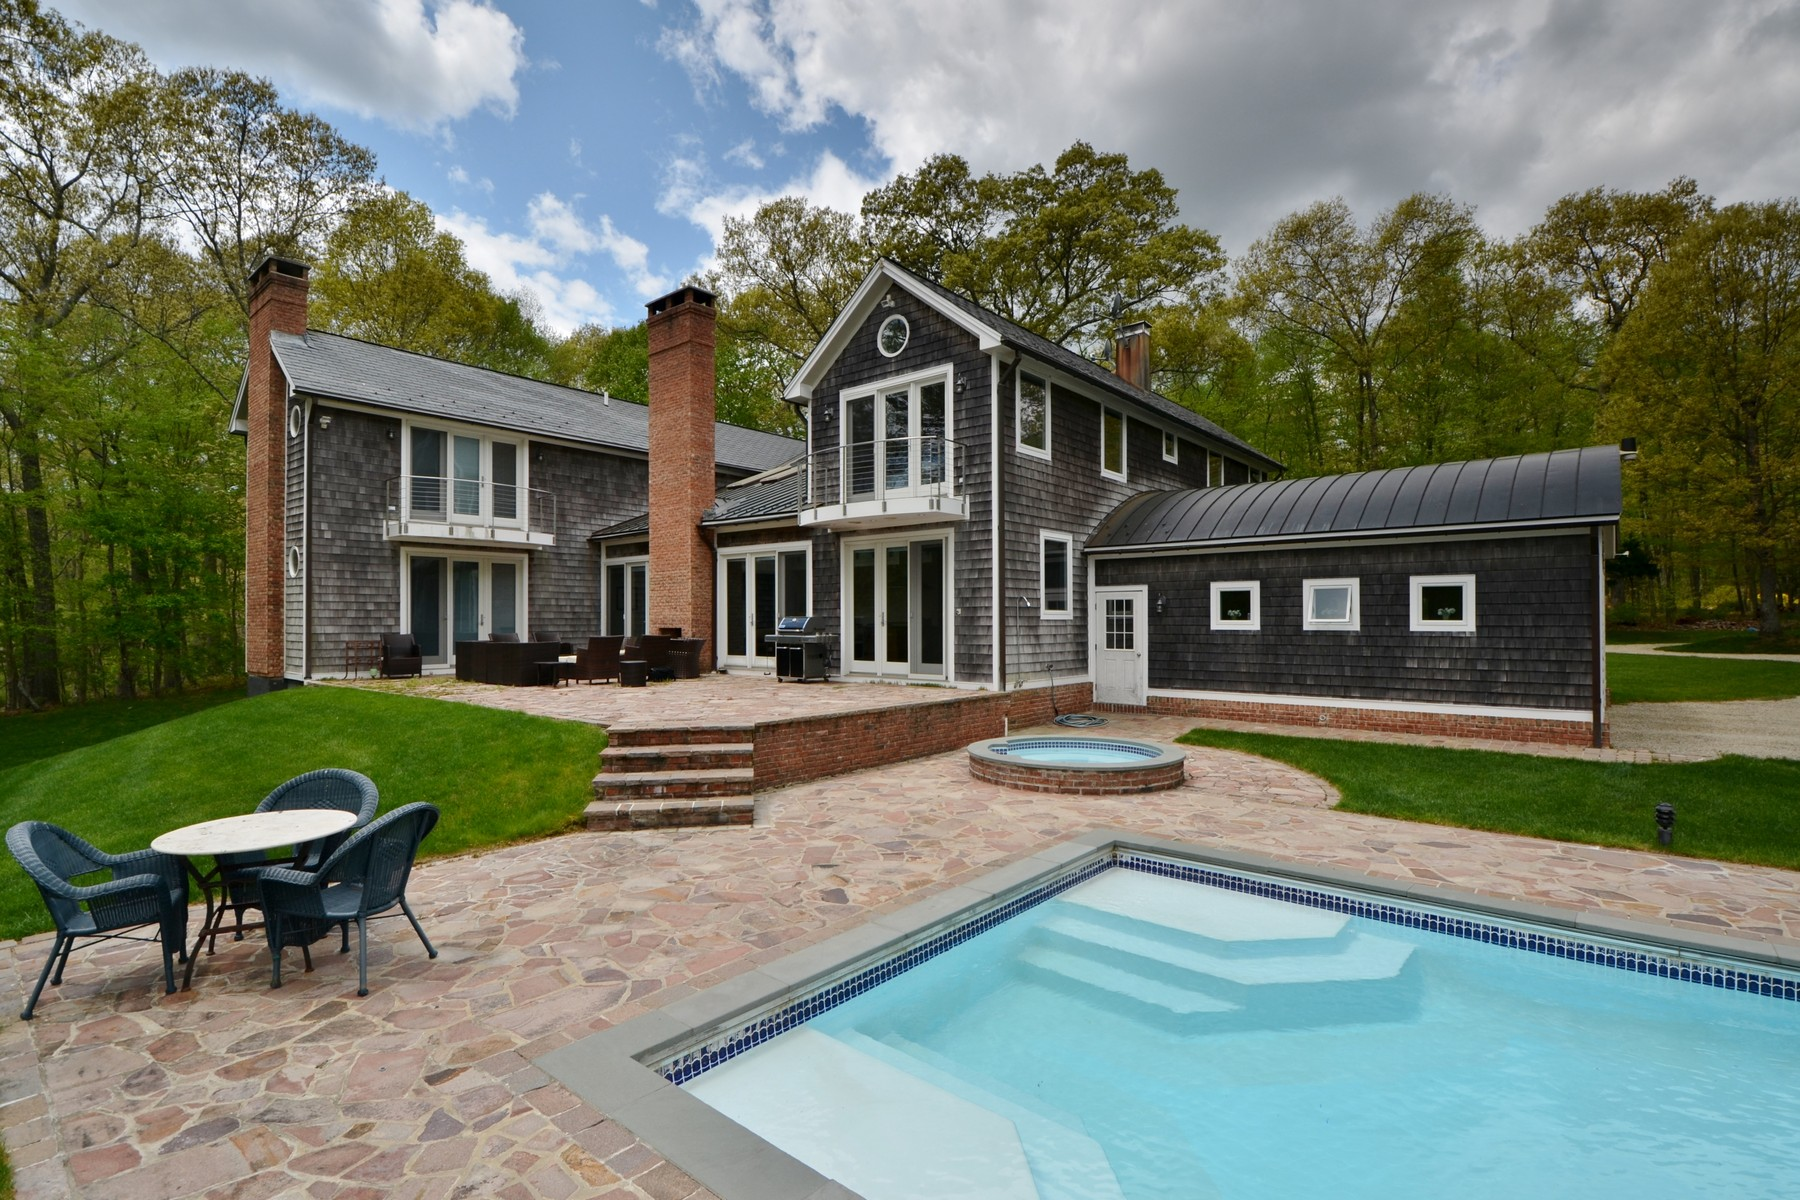 Casa Unifamiliar por un Venta en Desirable Otter Cove on Quiet 2.71 Acres 36 Otter Cove Dr Old Saybrook, Connecticut, 06475 Estados Unidos